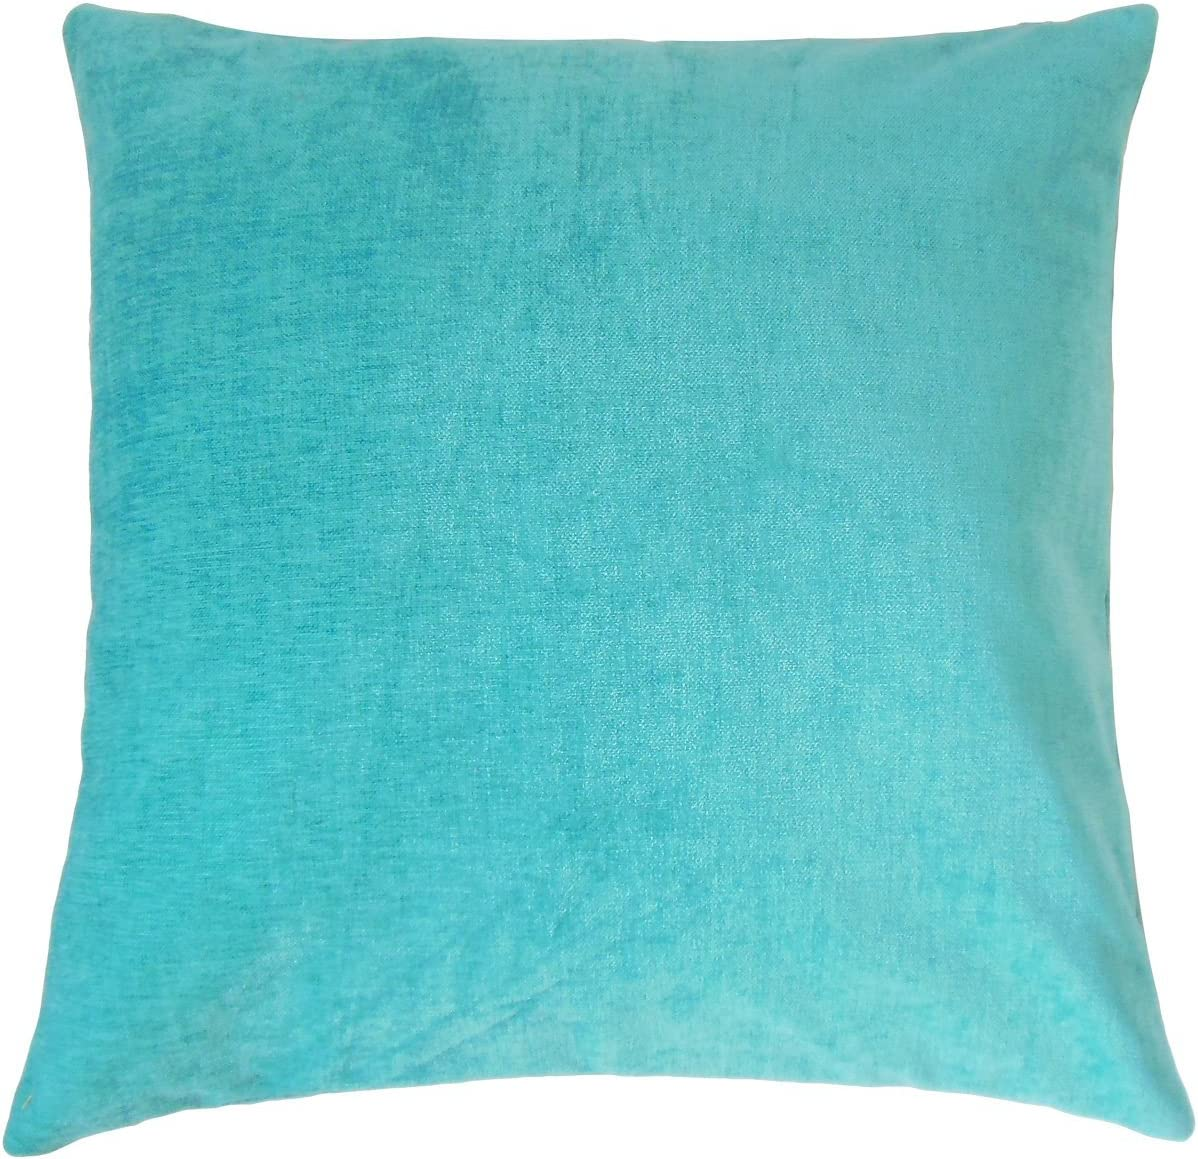 The Pillow Collection Elior Solid Bedding Sham Turquoise Queen//20 x 30